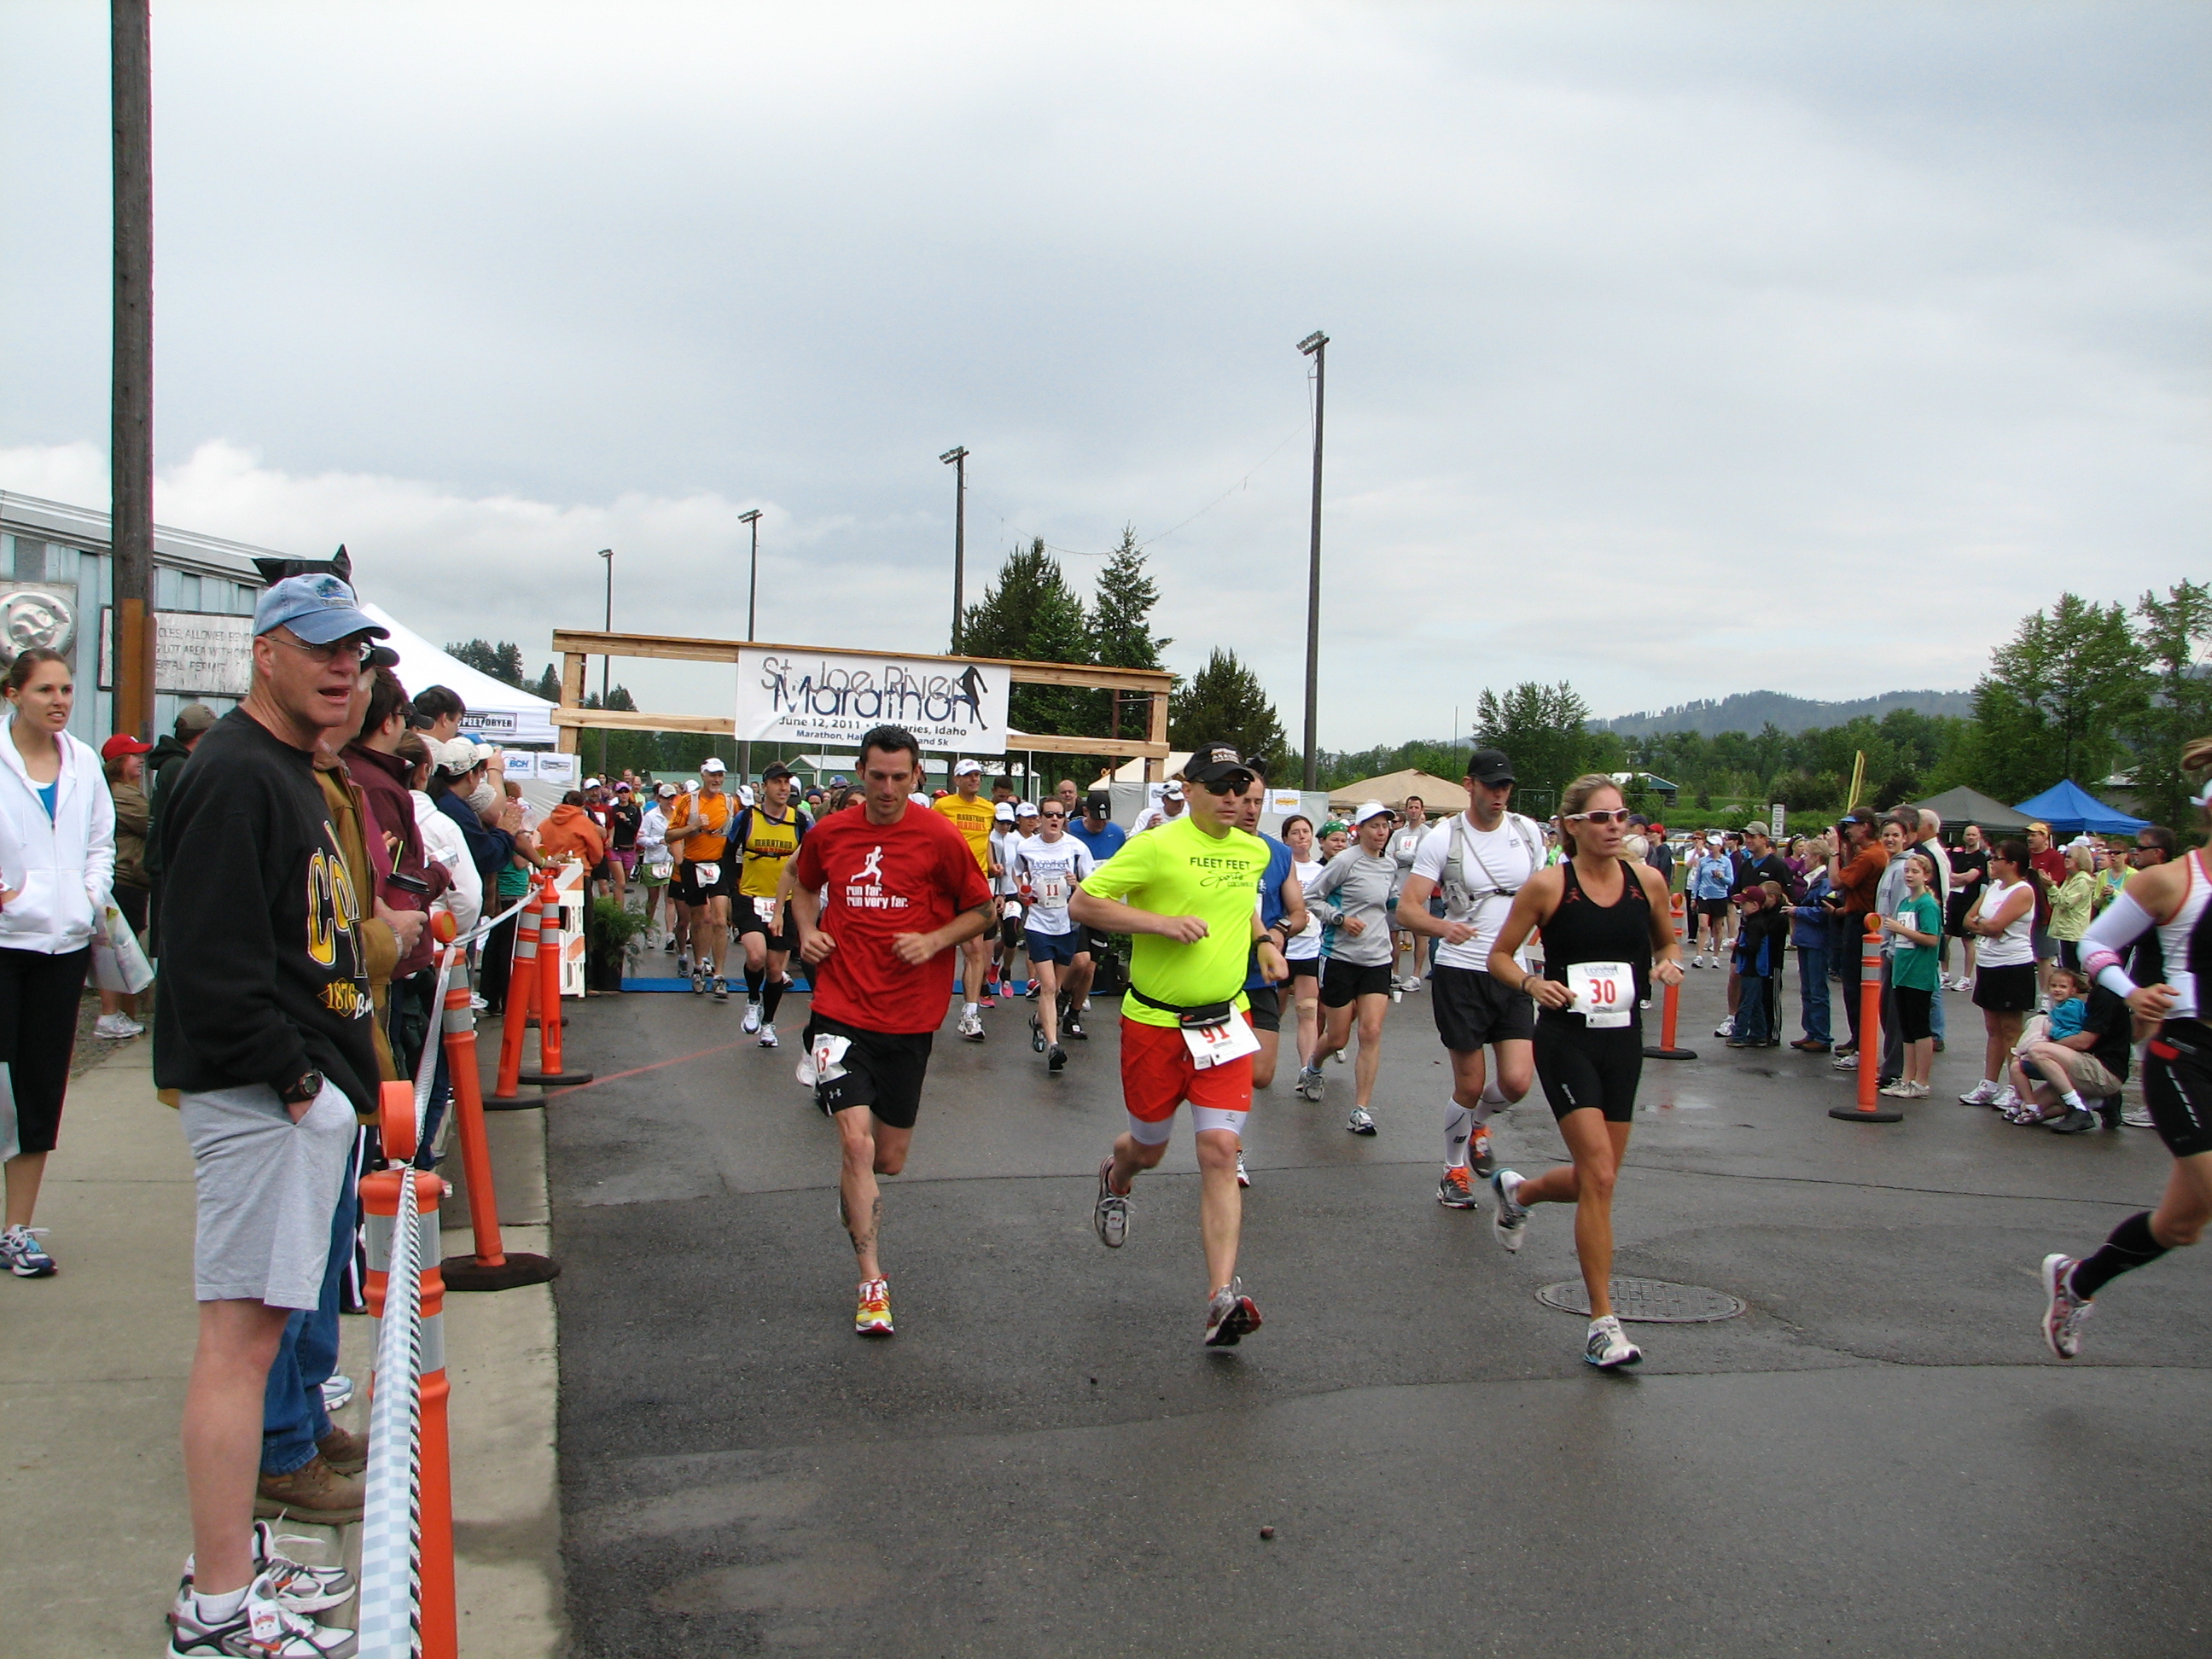 St. Joe River Marathon in Northern Idaho